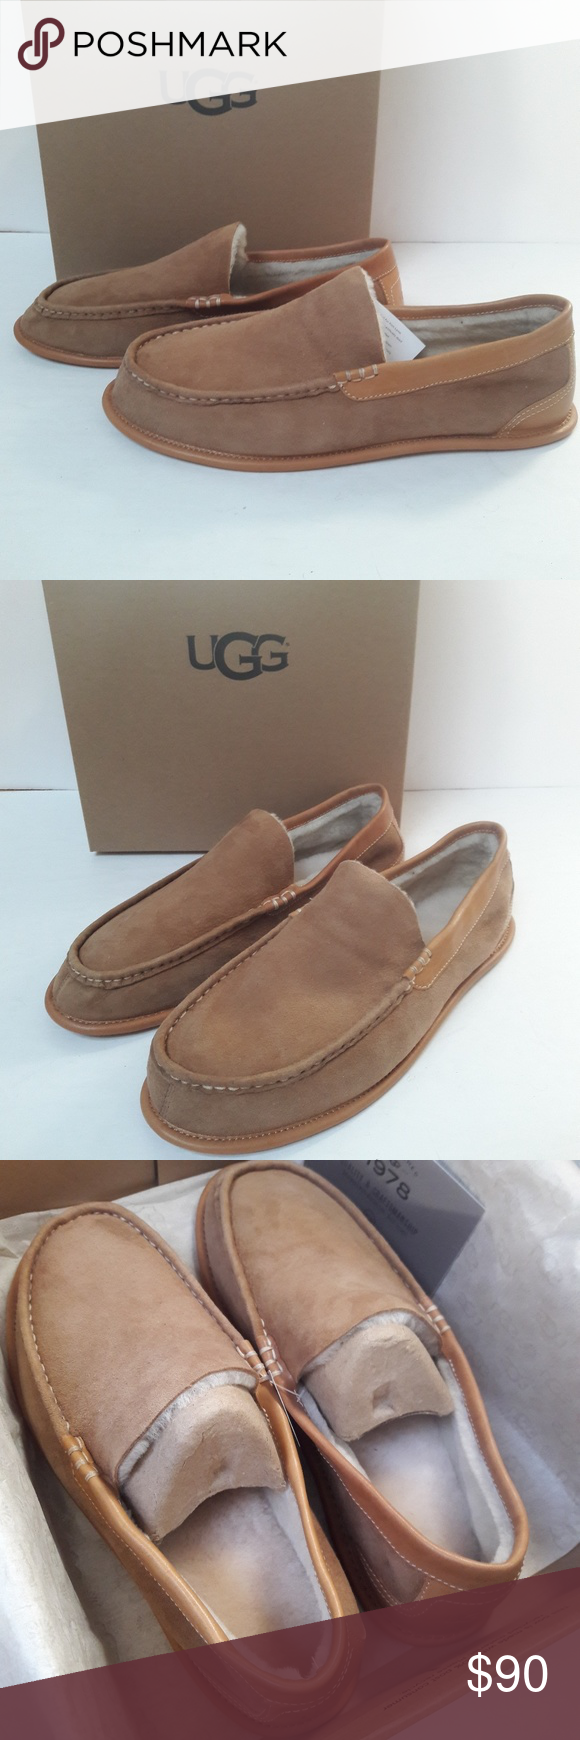 b1c92dbc5c7 New UGG Limited Edition Men's Slippers Size 12 New in box, quality ...